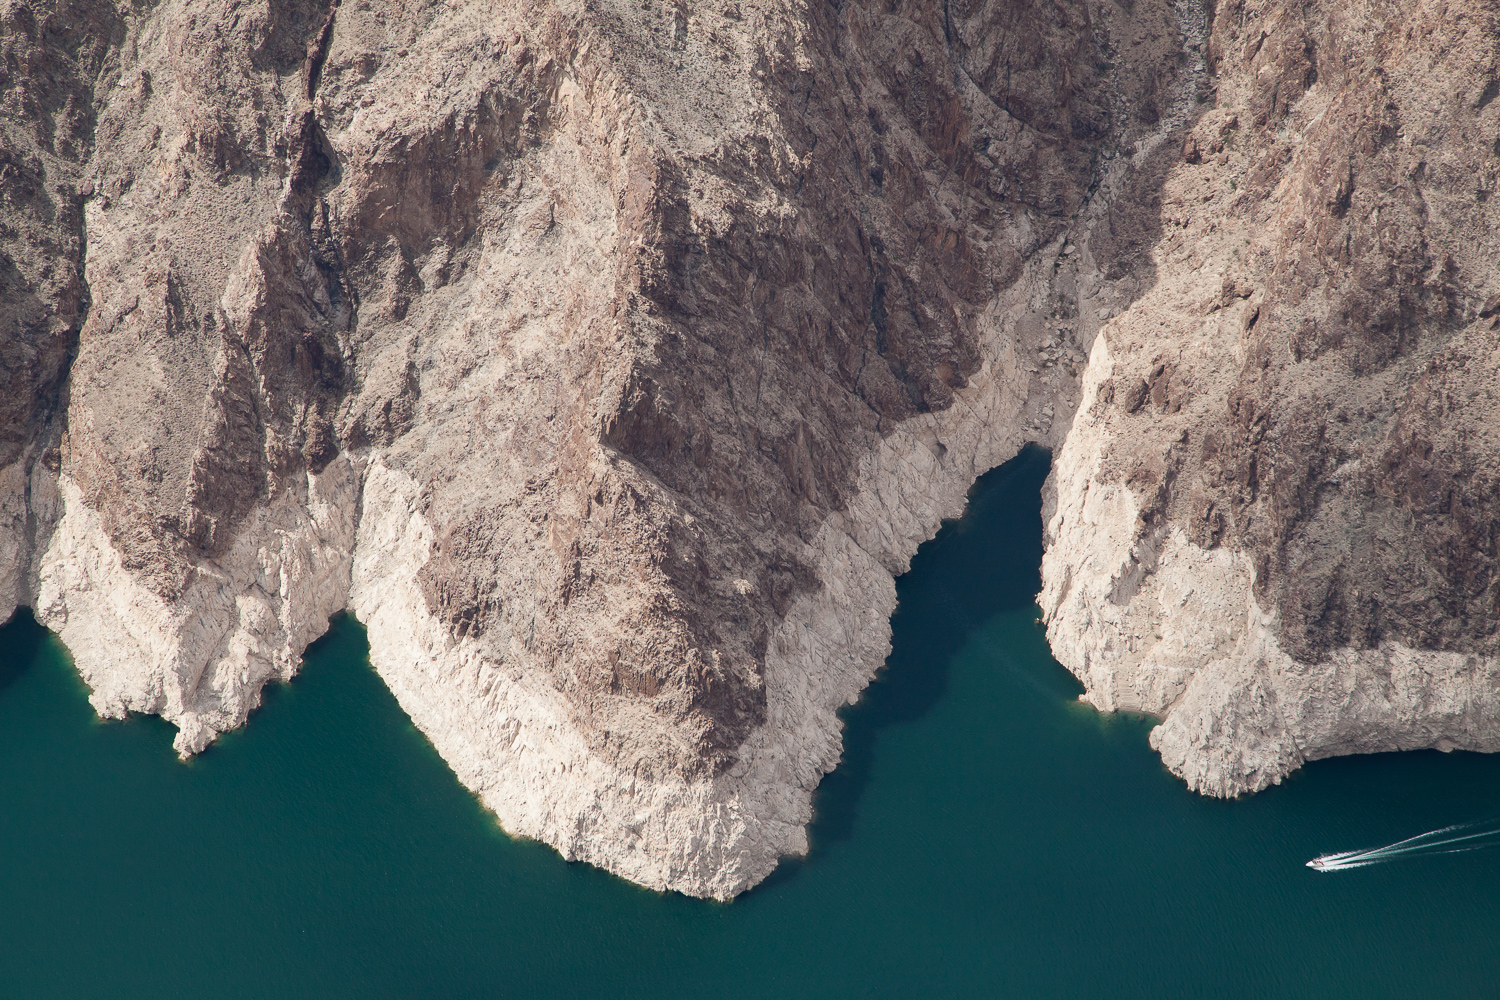 #nevada #aerial #aircam #adventure #joshnewman #lakemead #westfromabove